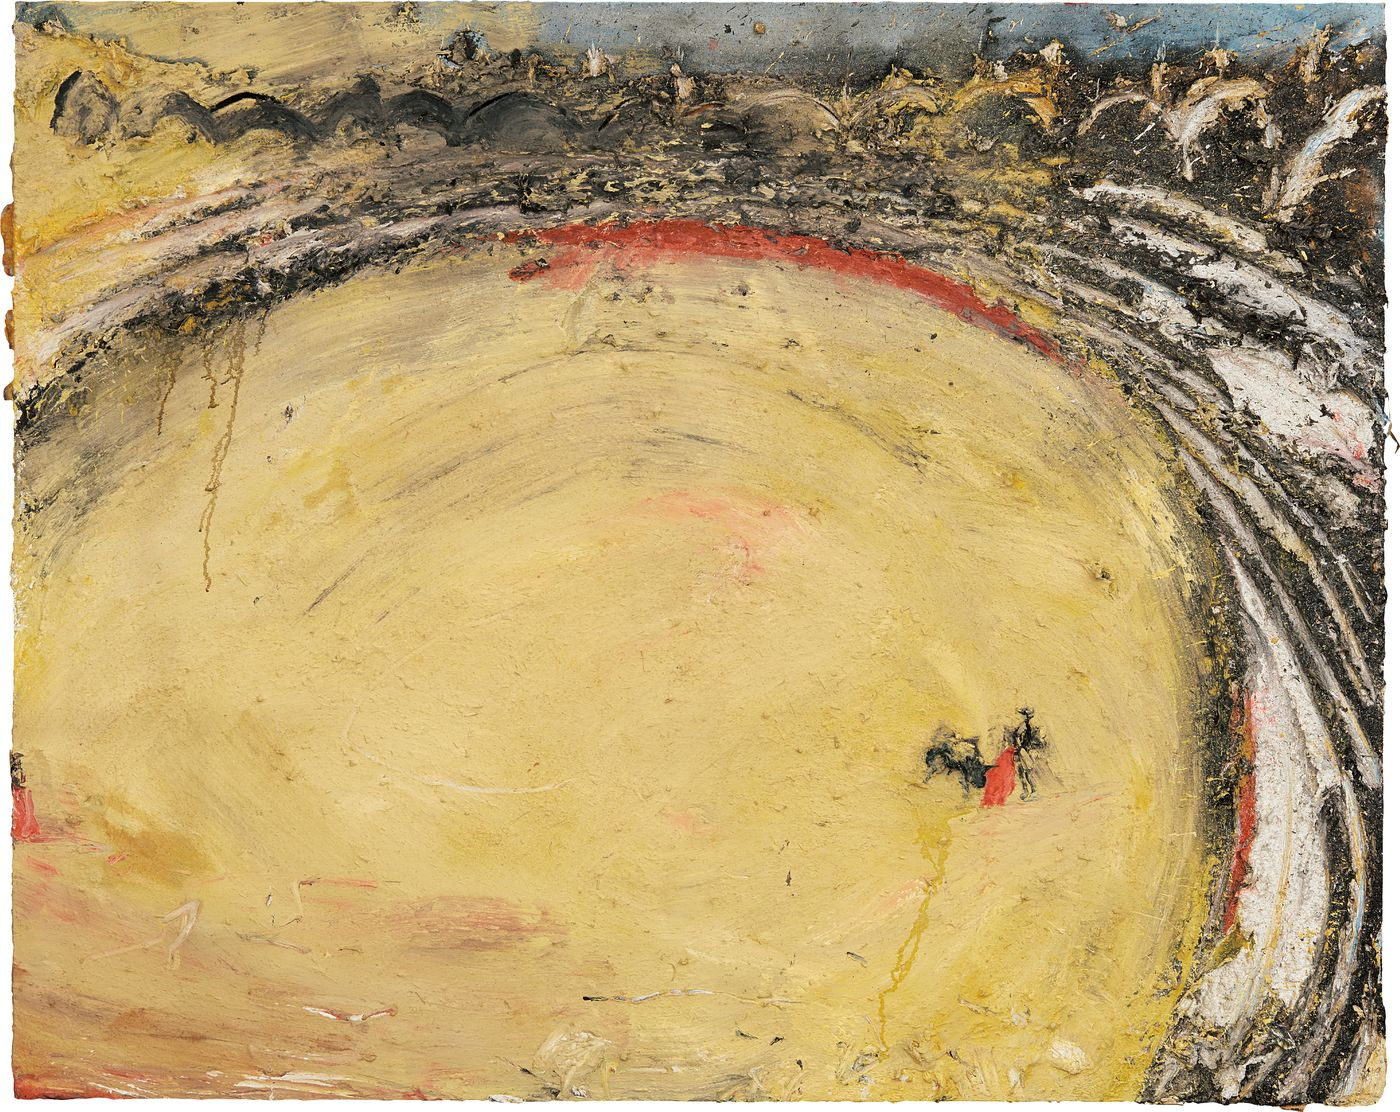 Executed after a revelatory trip to Africa, Miquel Barceló's violently impastoed 'Muletero', 1990 is one of the artist's most celebrated bullfight scenes.